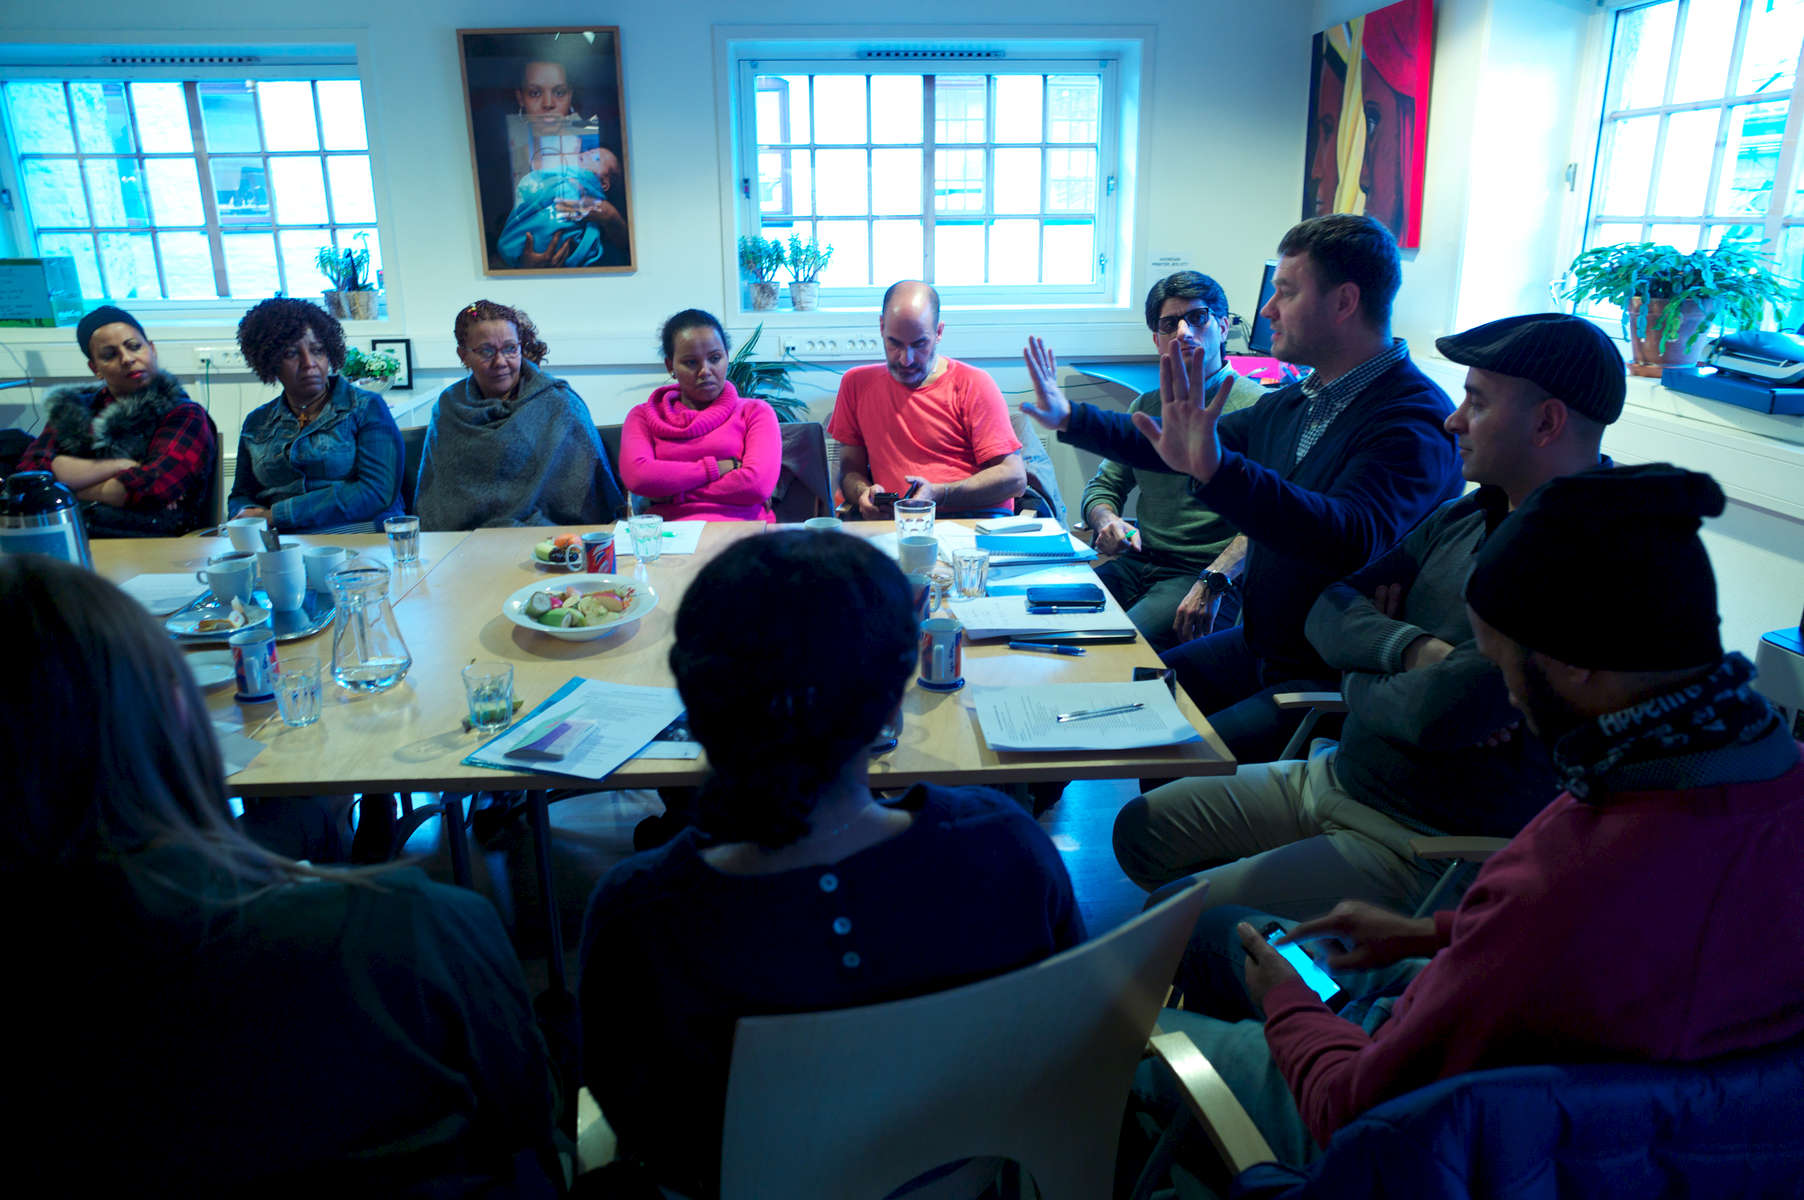 A group of people in a conference room discuss the plight of rejected asylum seekers.